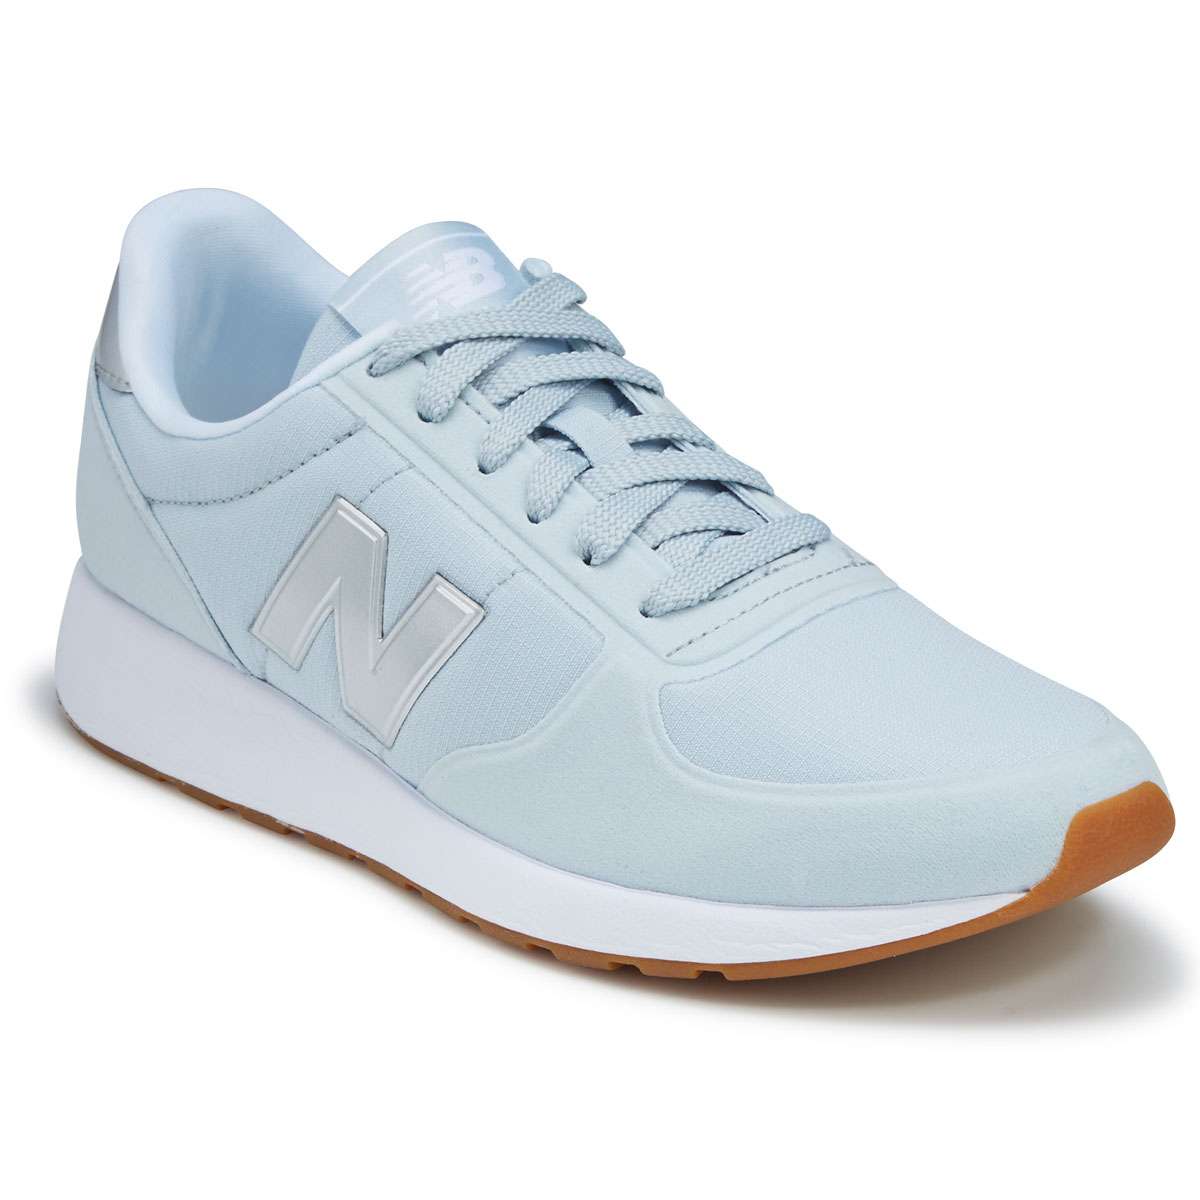 New Balance Women's 215V1 Sneakers - Blue, 9